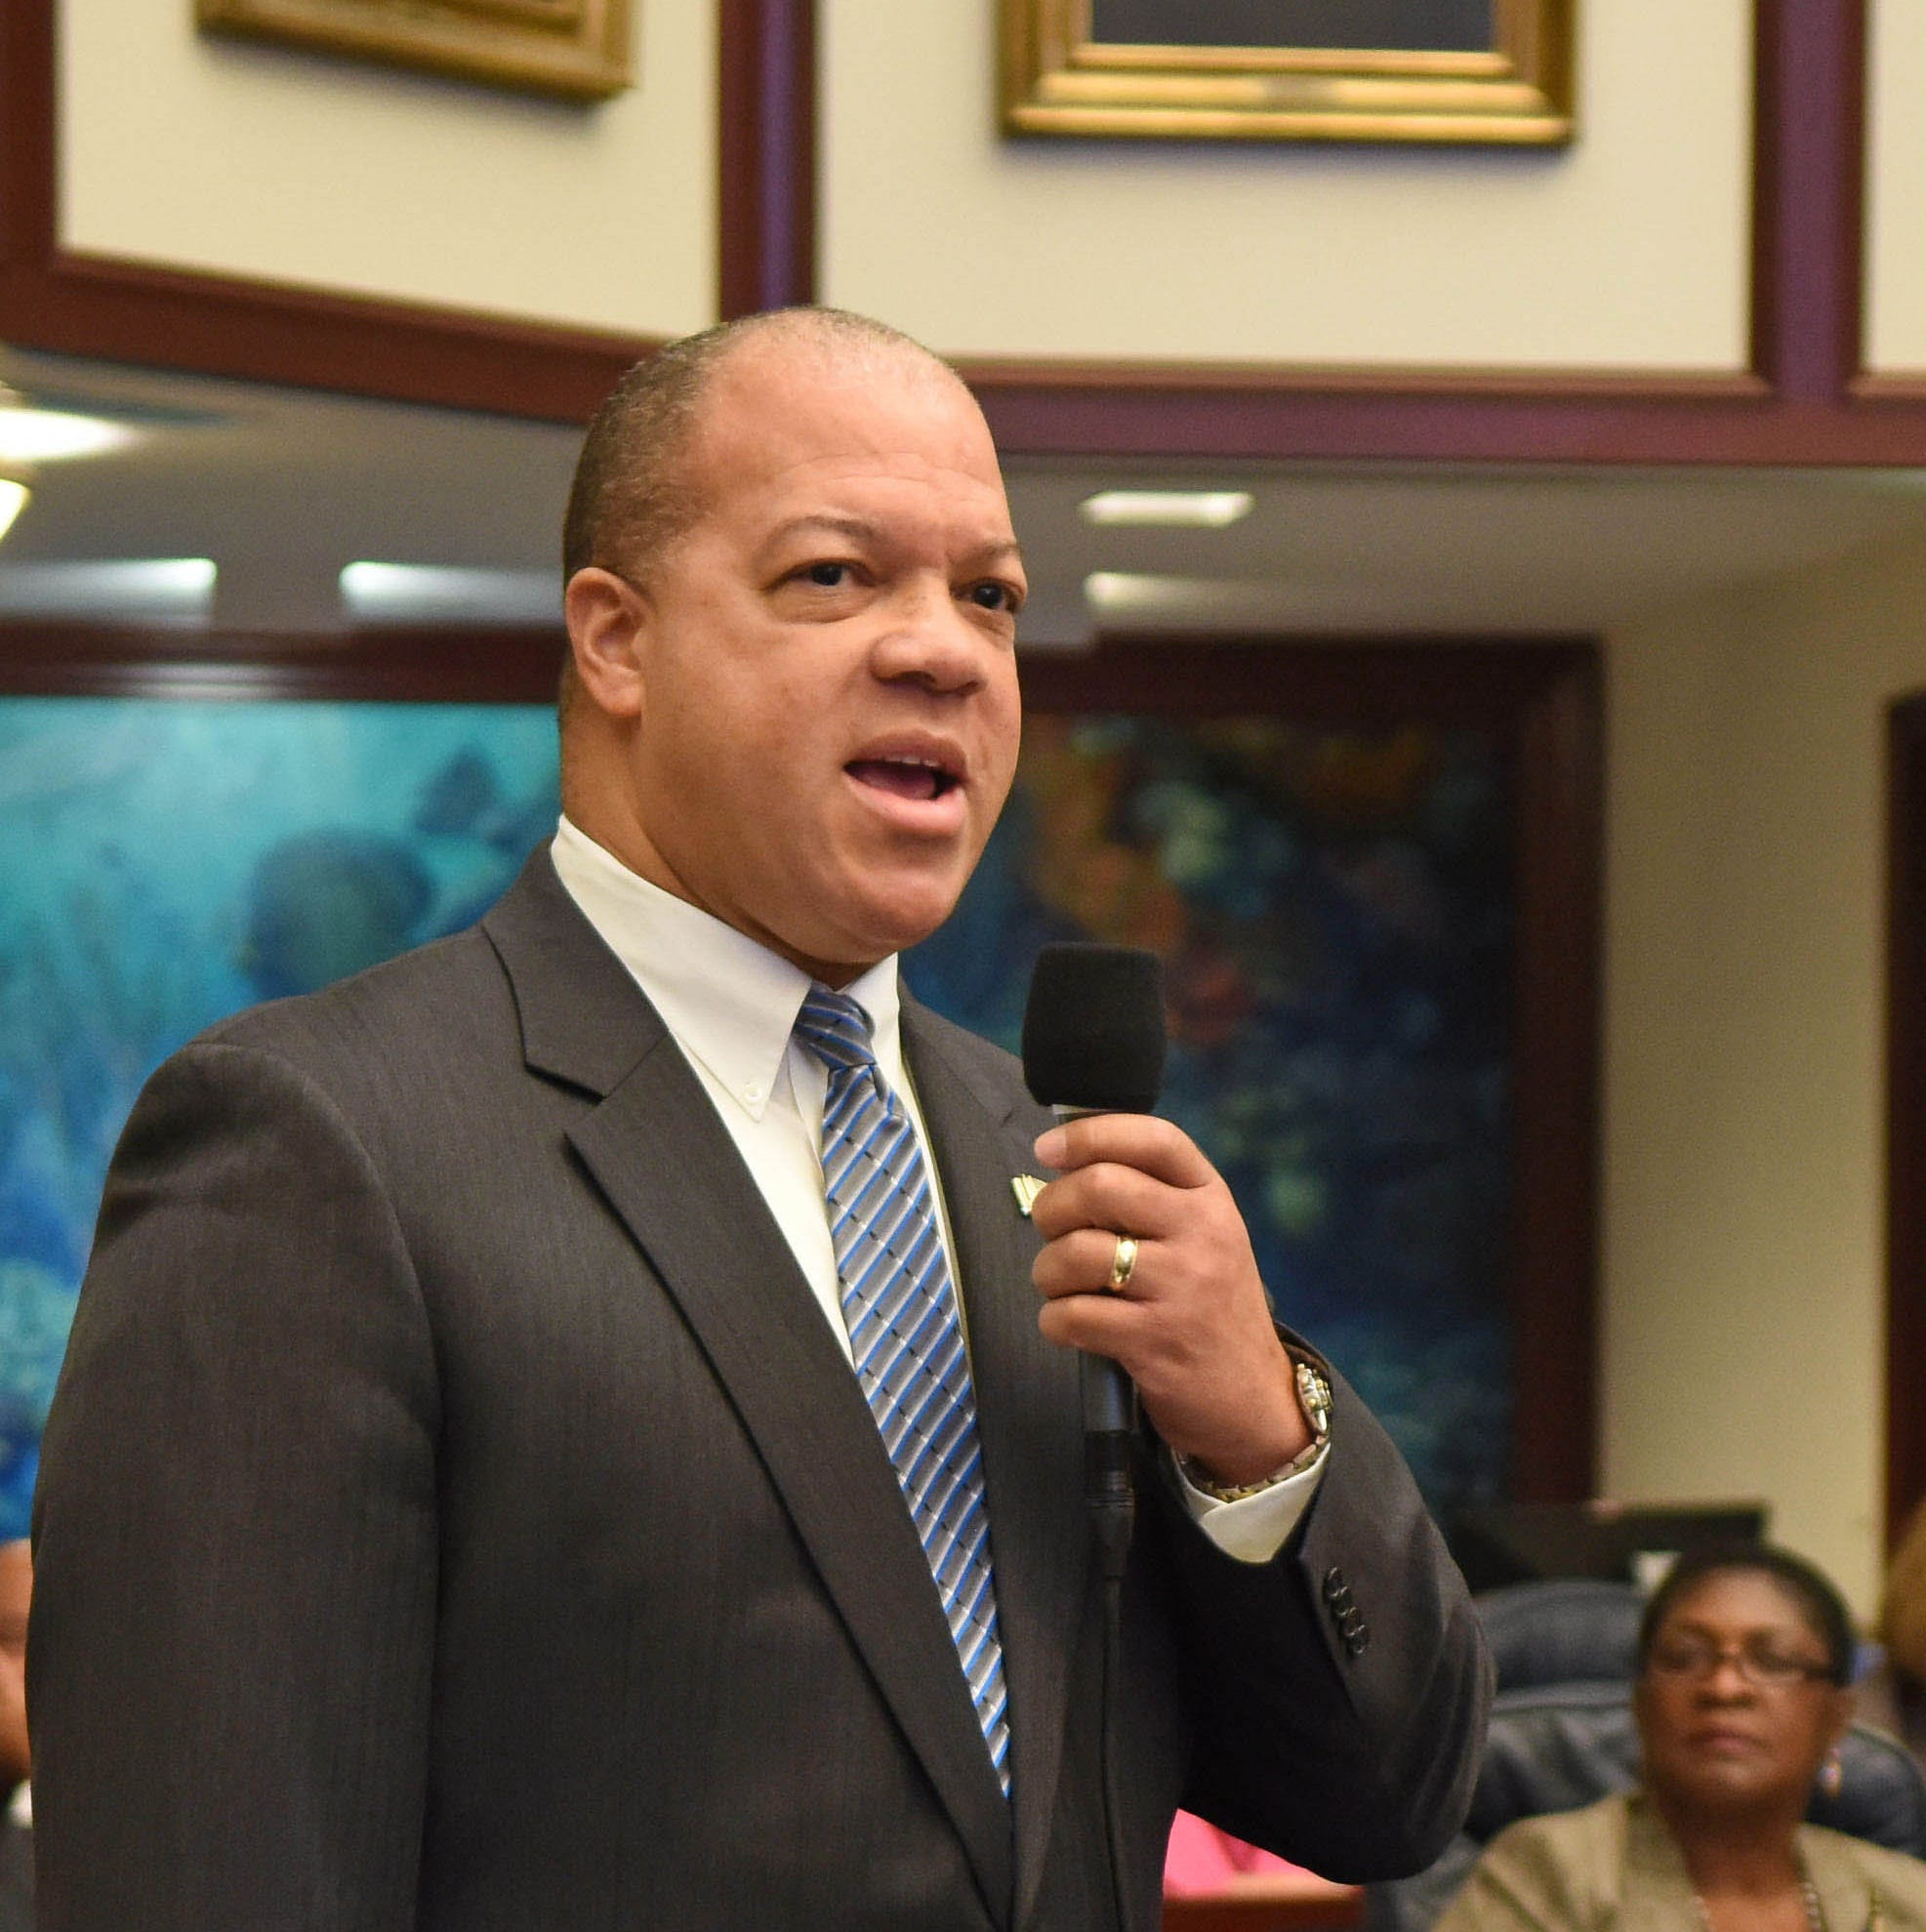 Rep. Mike Hill says he will propose Florida abortion ban modeled after Alabama's new law